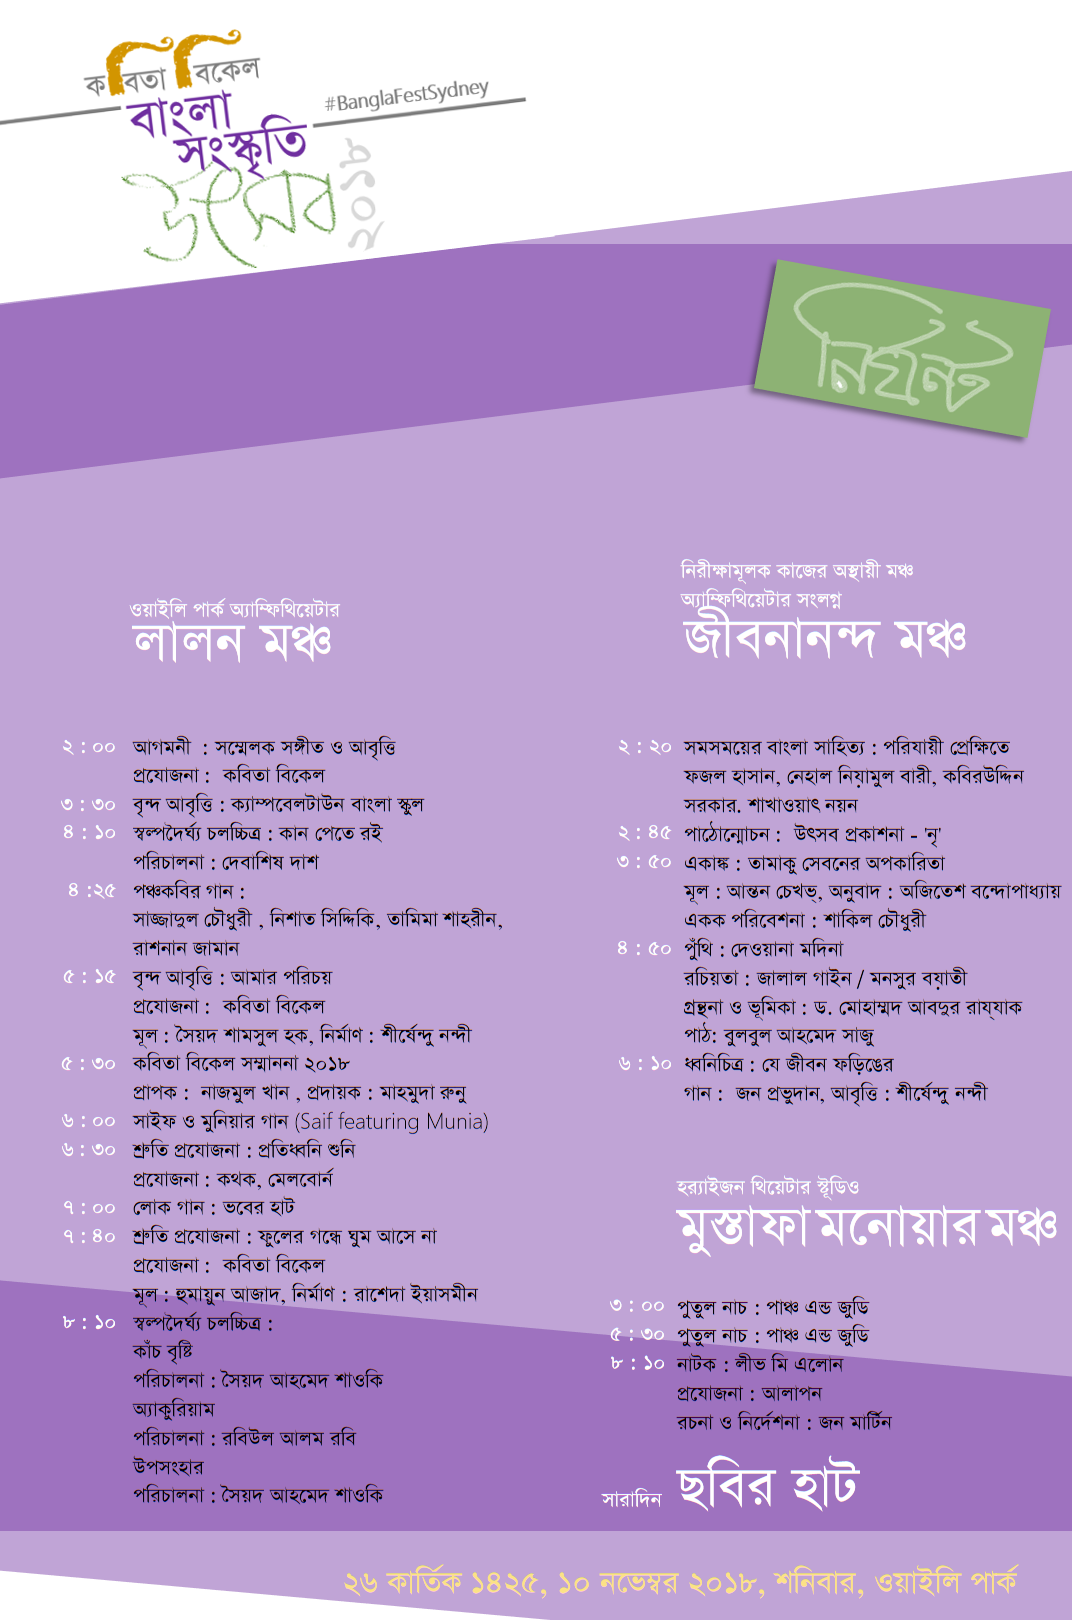 Kobita bikel program timetable 2018